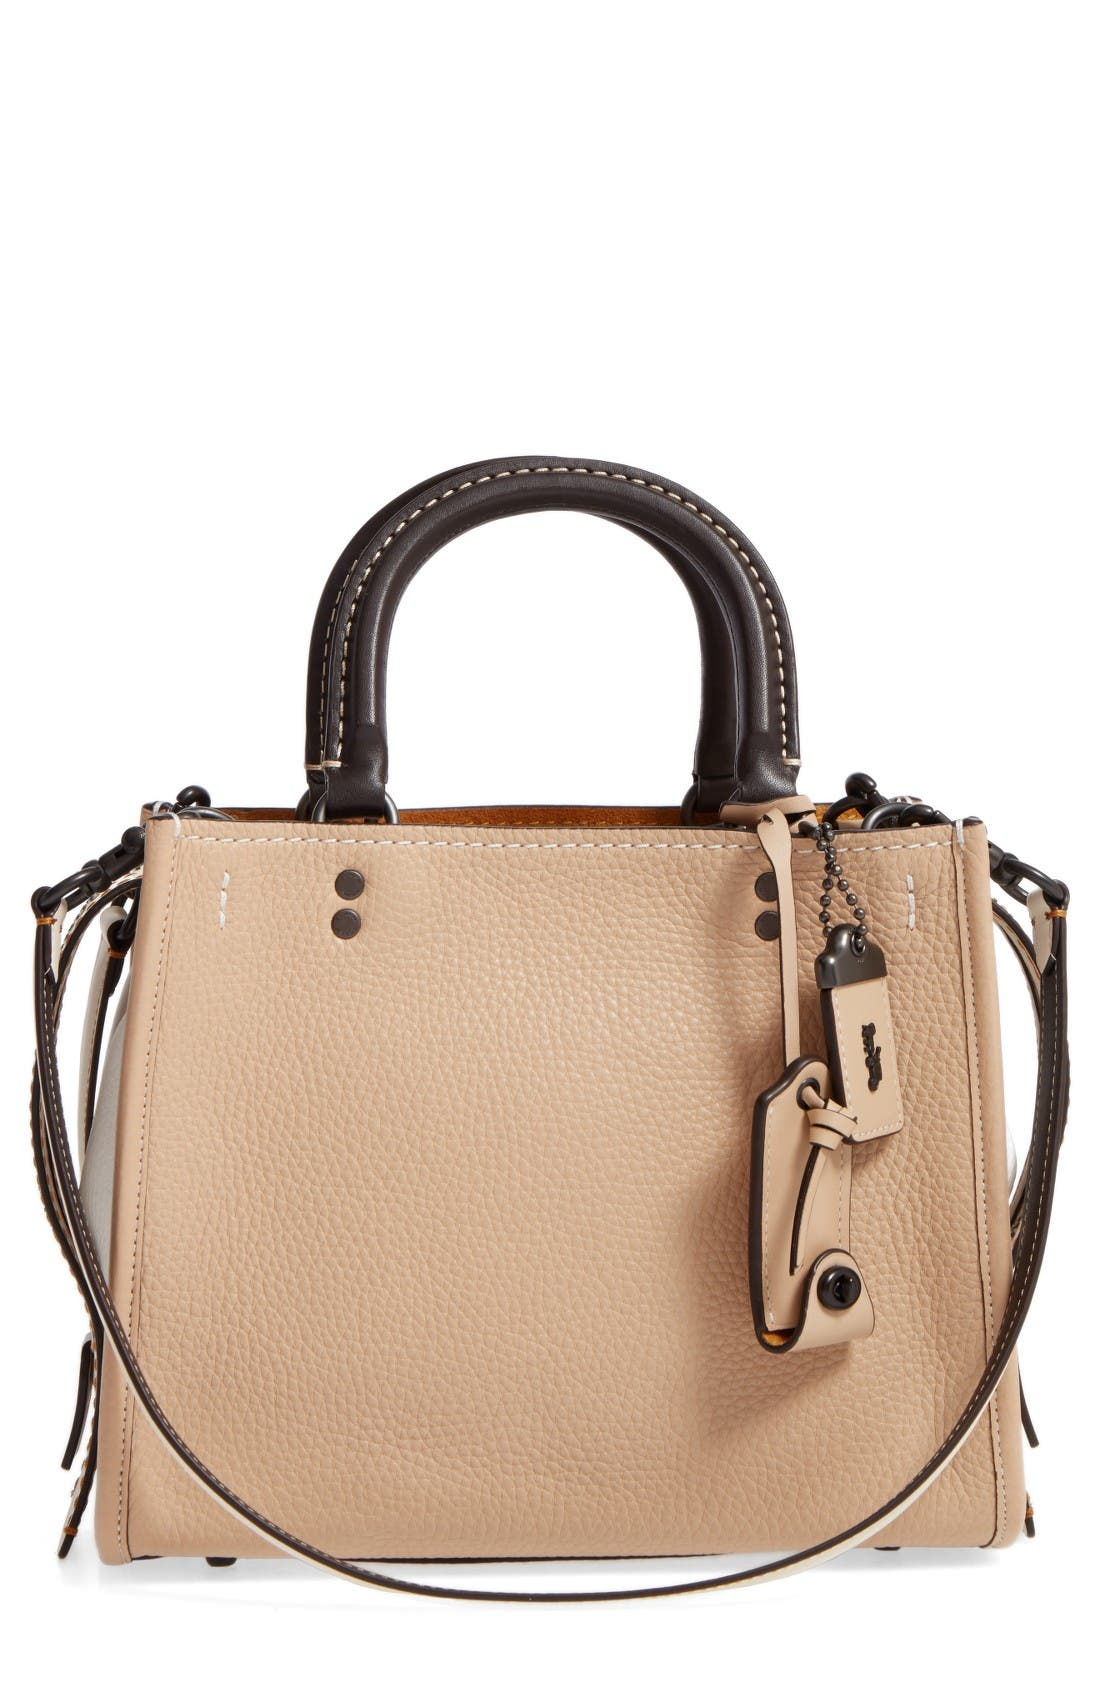 COACH 1941 Rogue 25 Leather Satchel